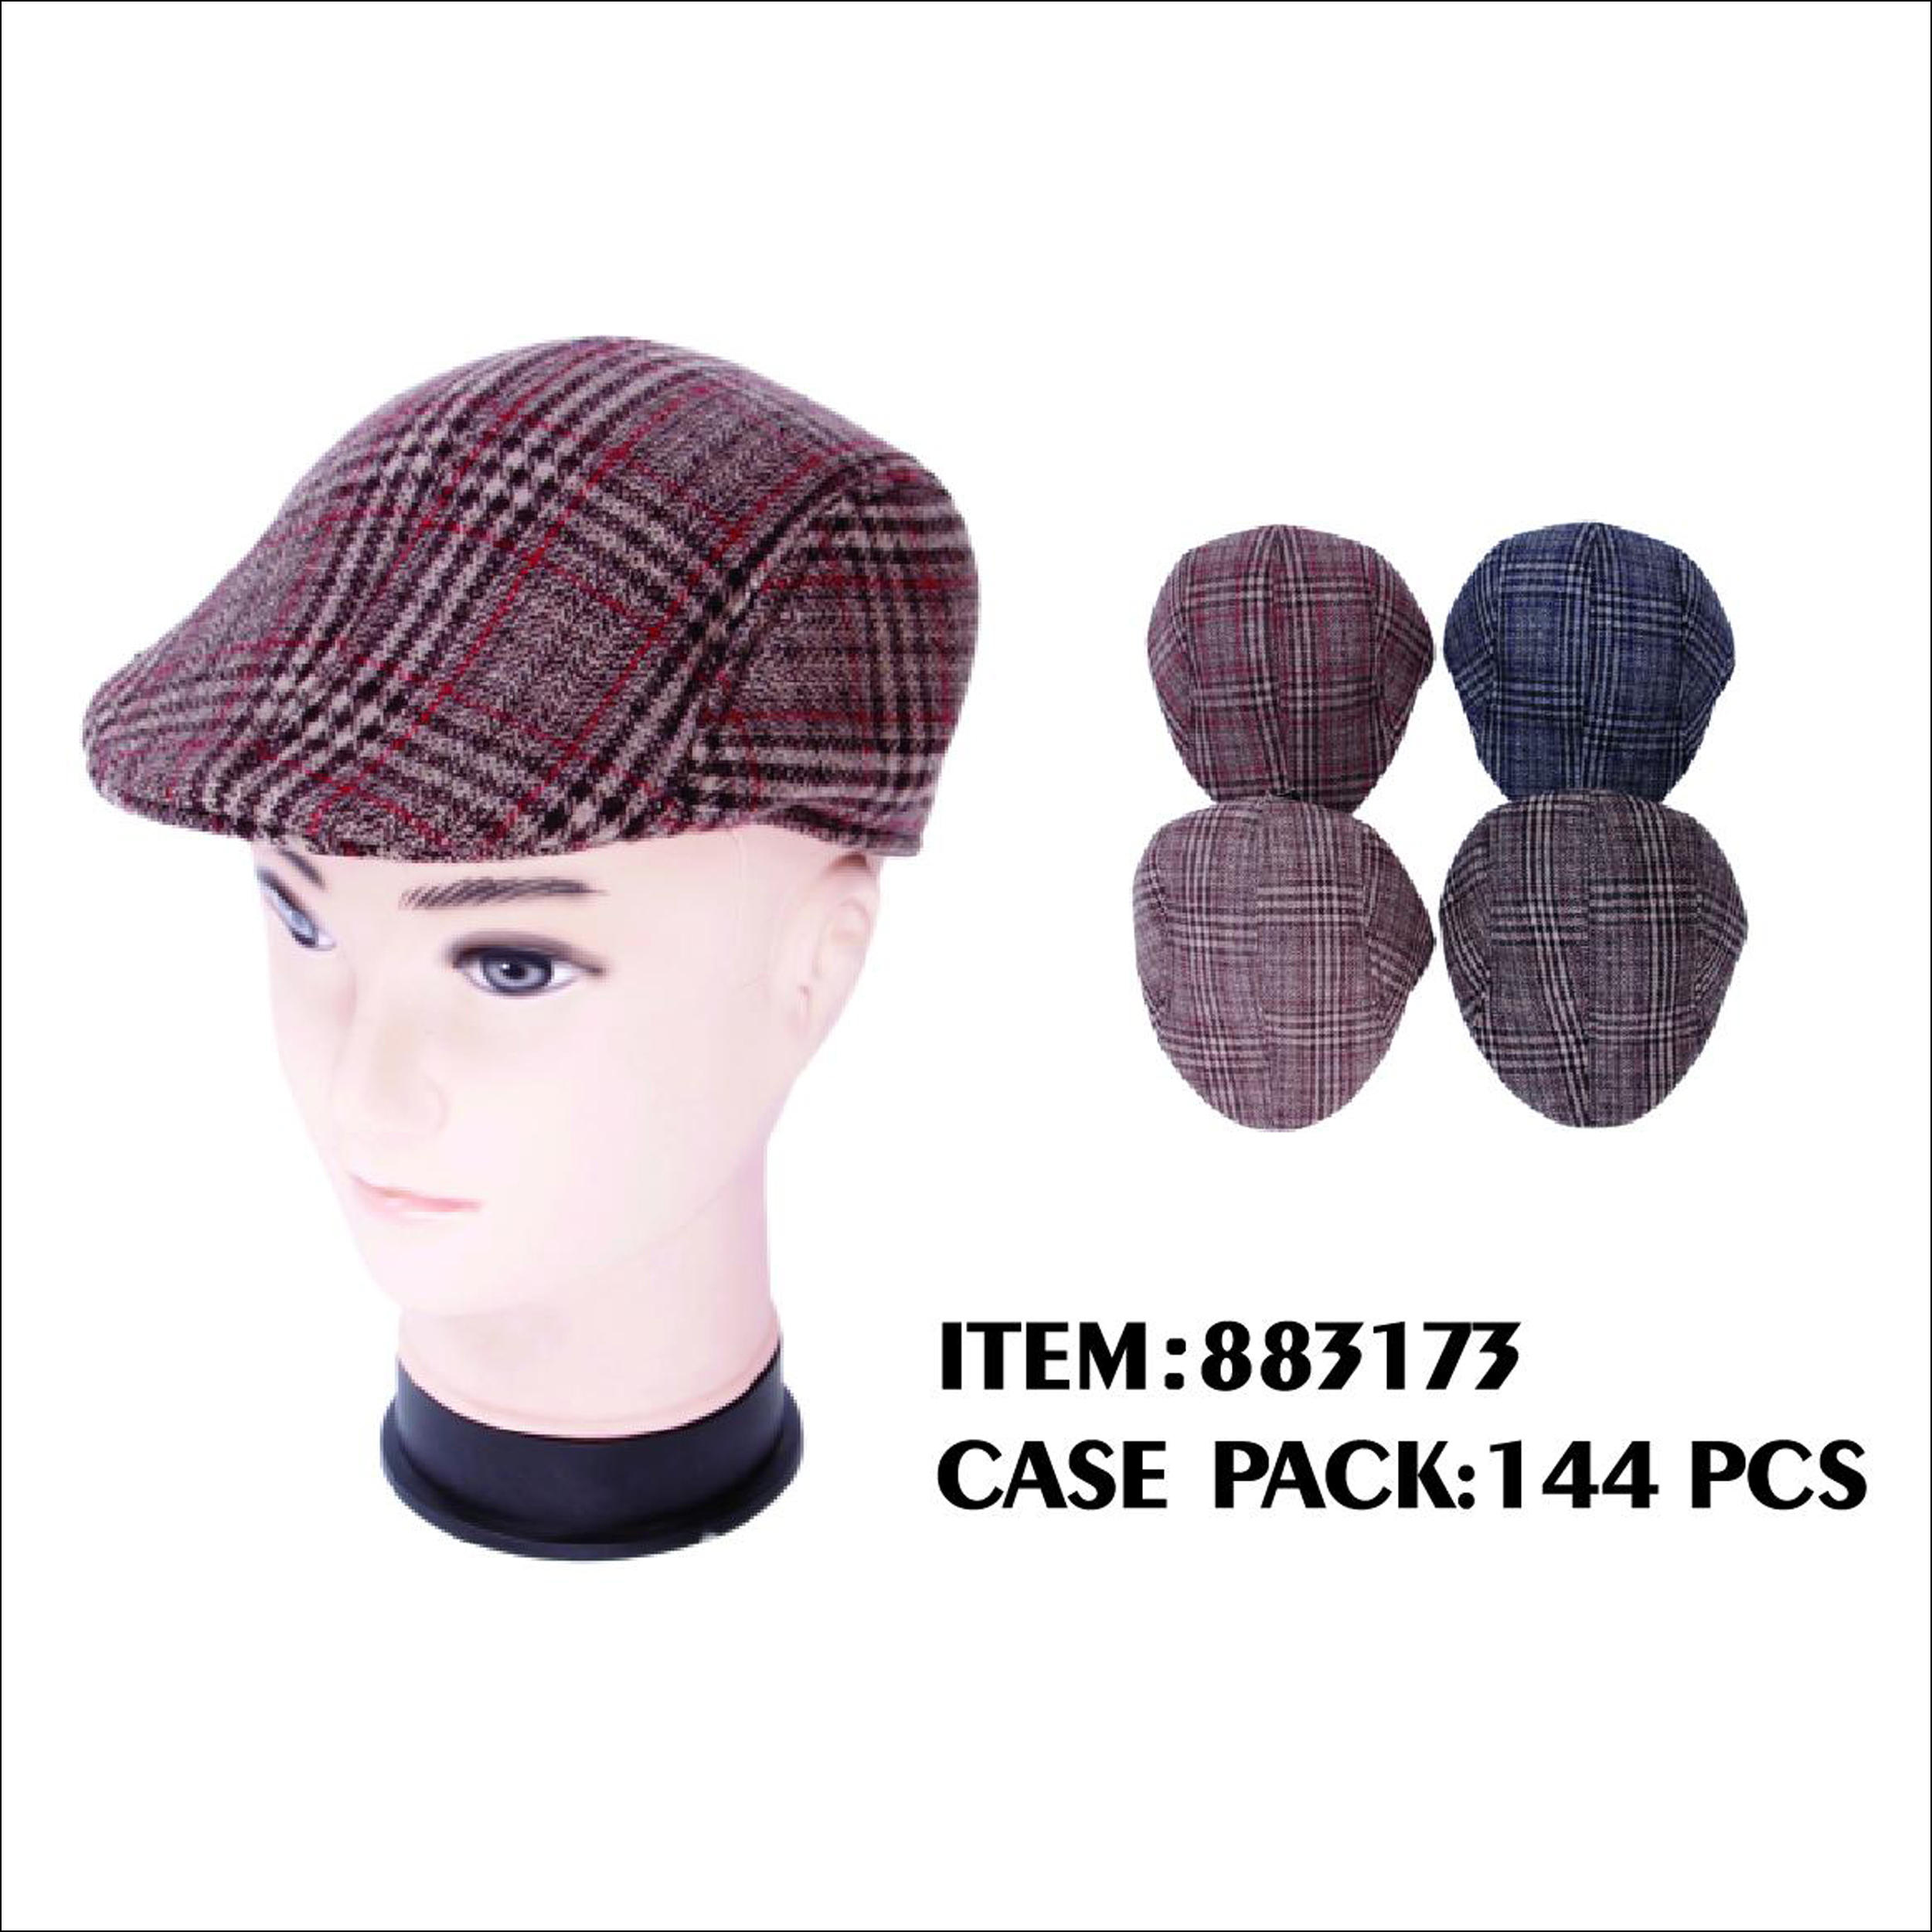 d65df318a06 Mens WT Flat Caps   QB TRADING INC. General Merchadise Wholesale ...